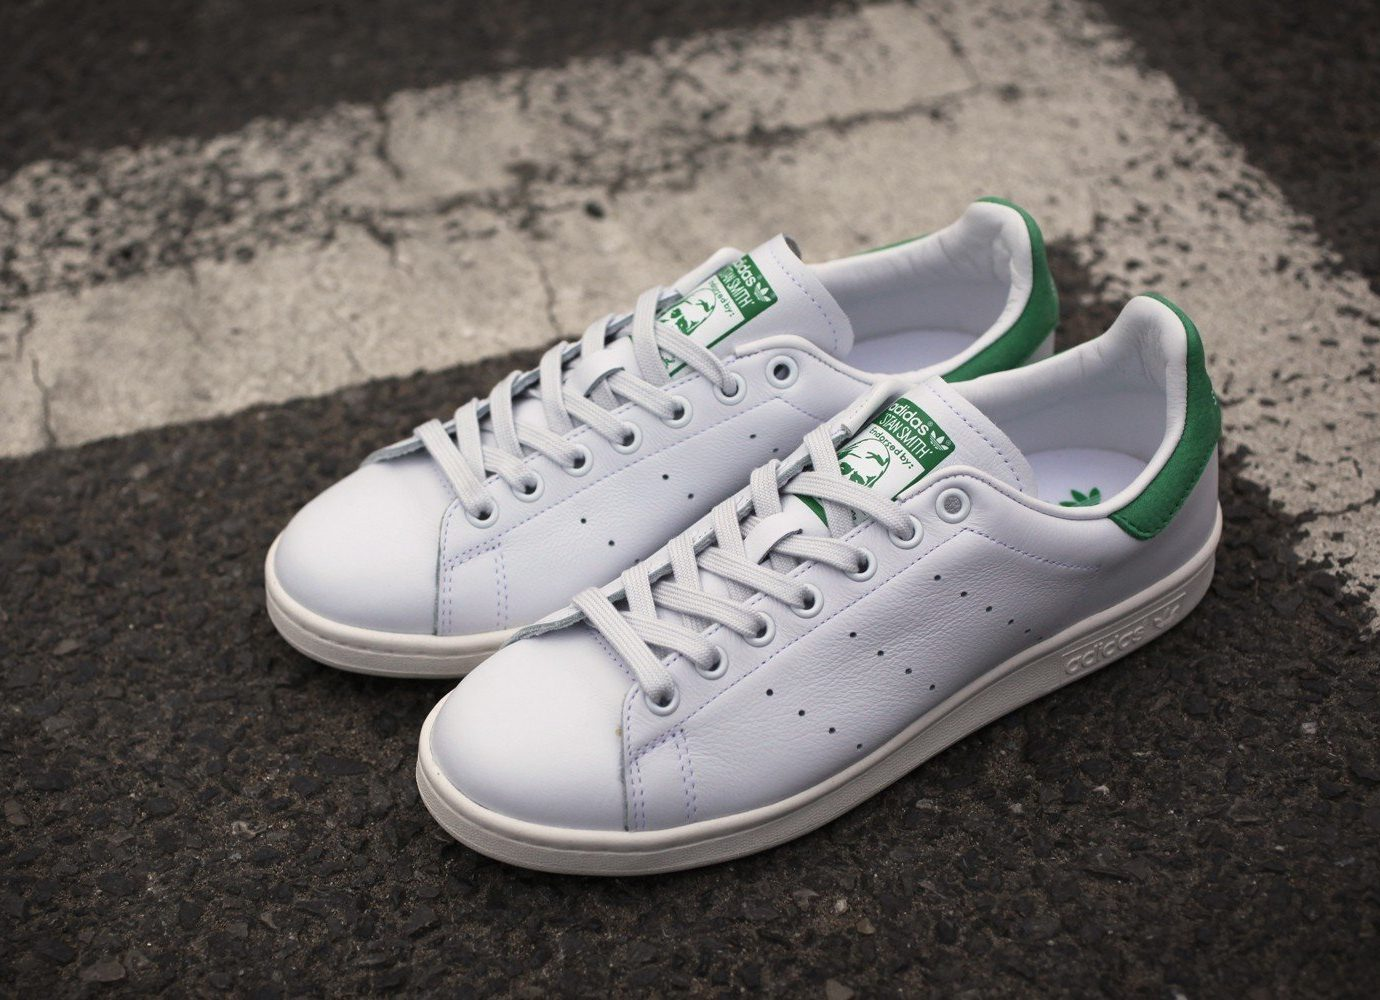 Style + Design ground clothing footwear shoe white sneakers green shoes outdoor shoe feet